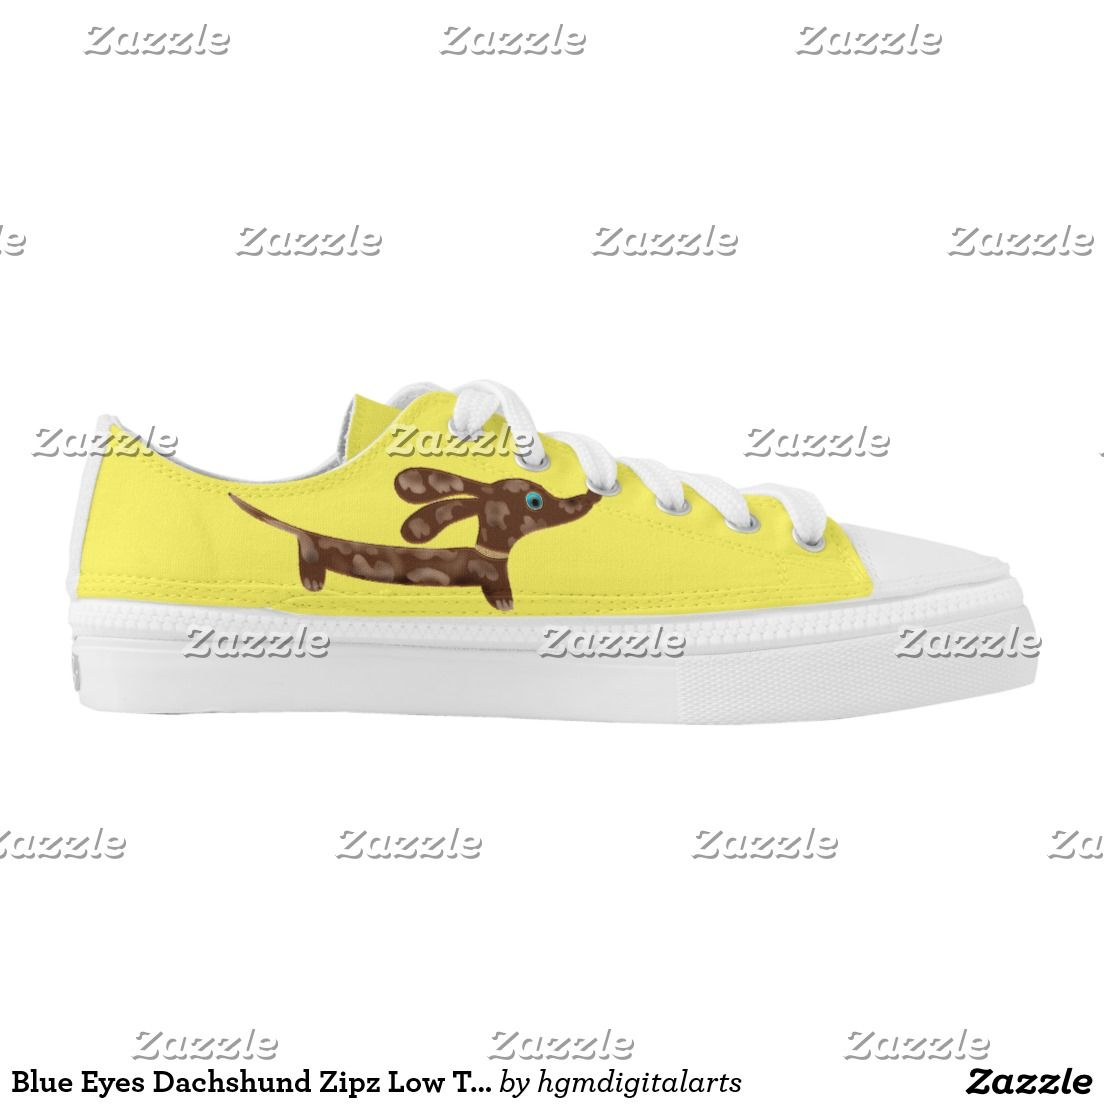 Blue Eyes Dachshund Zipz Low Top Shoes US-Women Printed Shoes